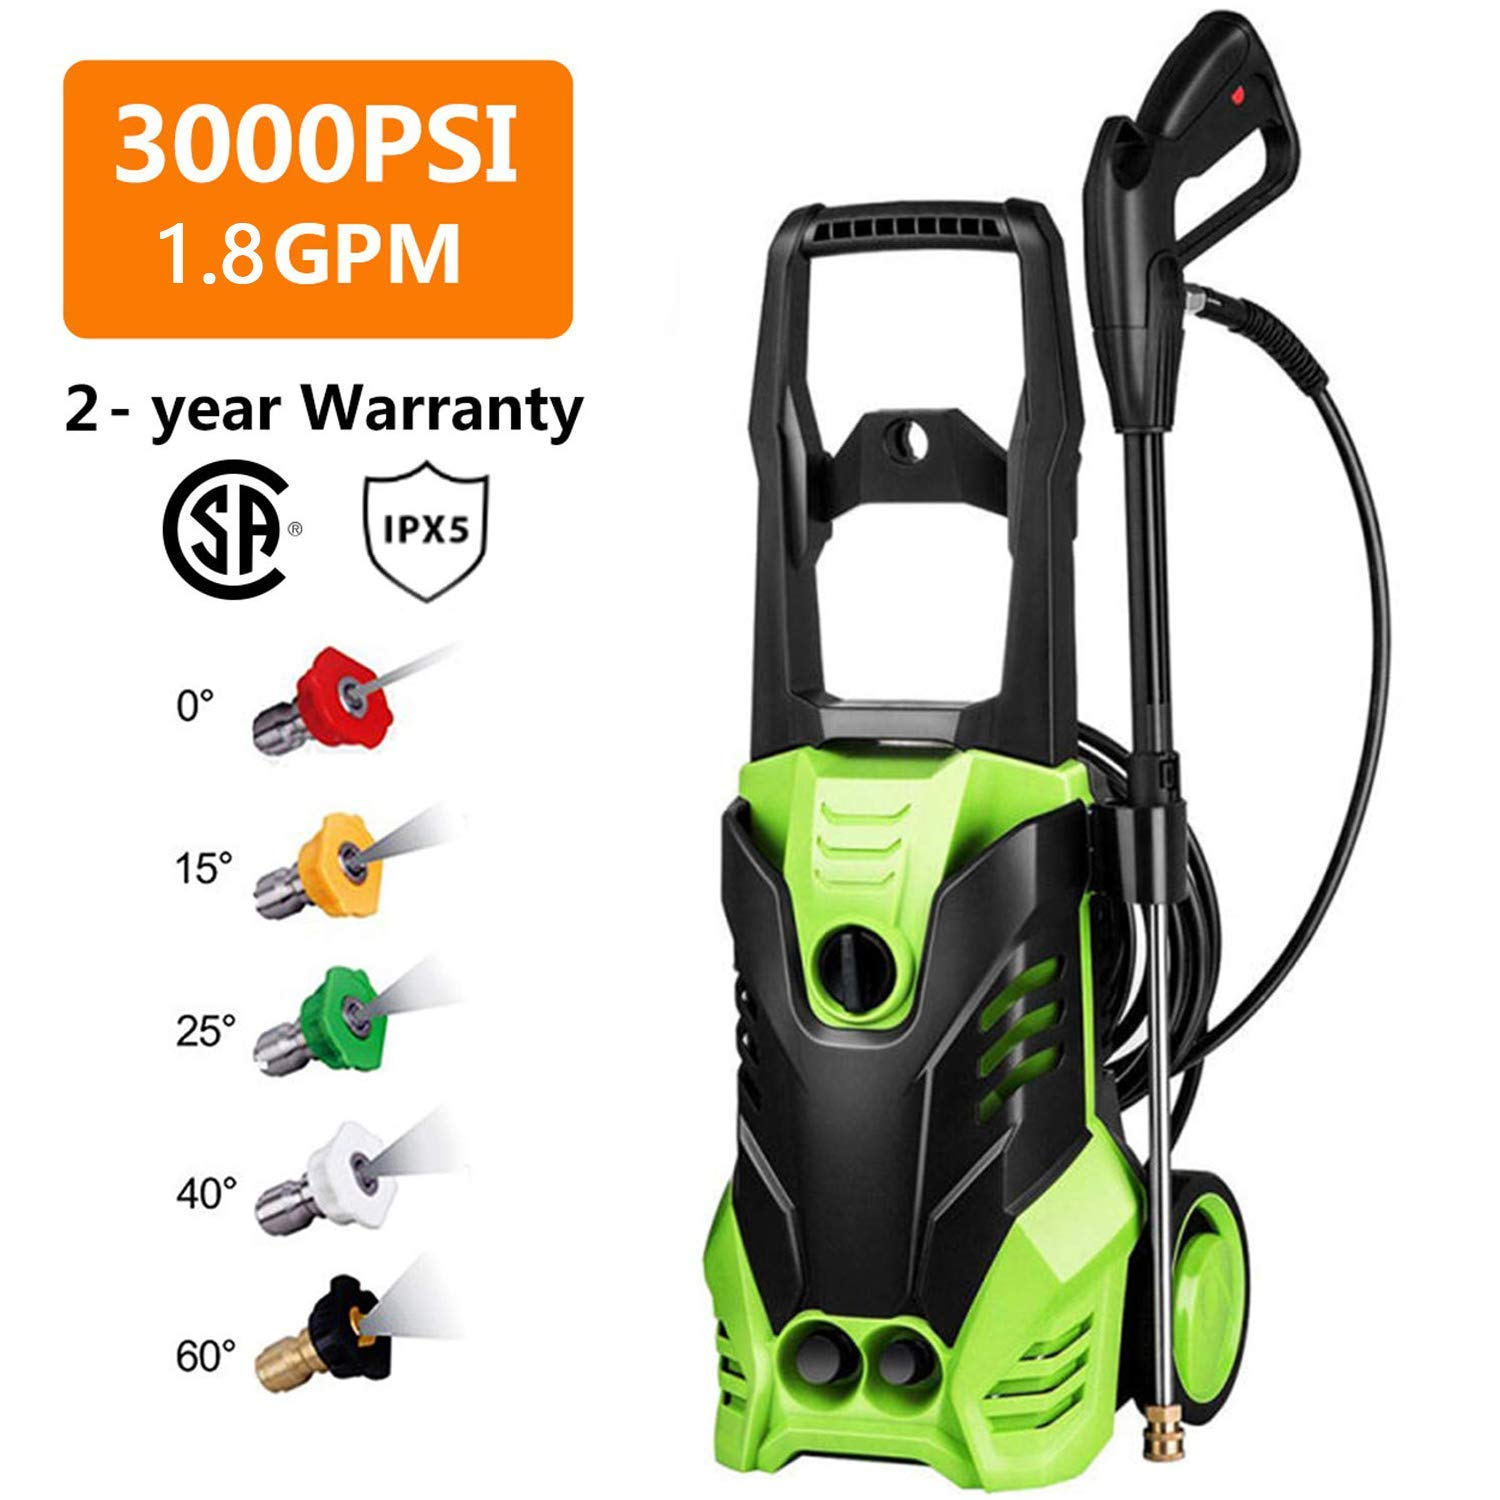 Homdox 3000 PSI Electric Pressure Washer Power Washer 1800W Rolling Wheels High Pressure Washer Cleaner Machine with 5 Nozzles, 1.80 GPM